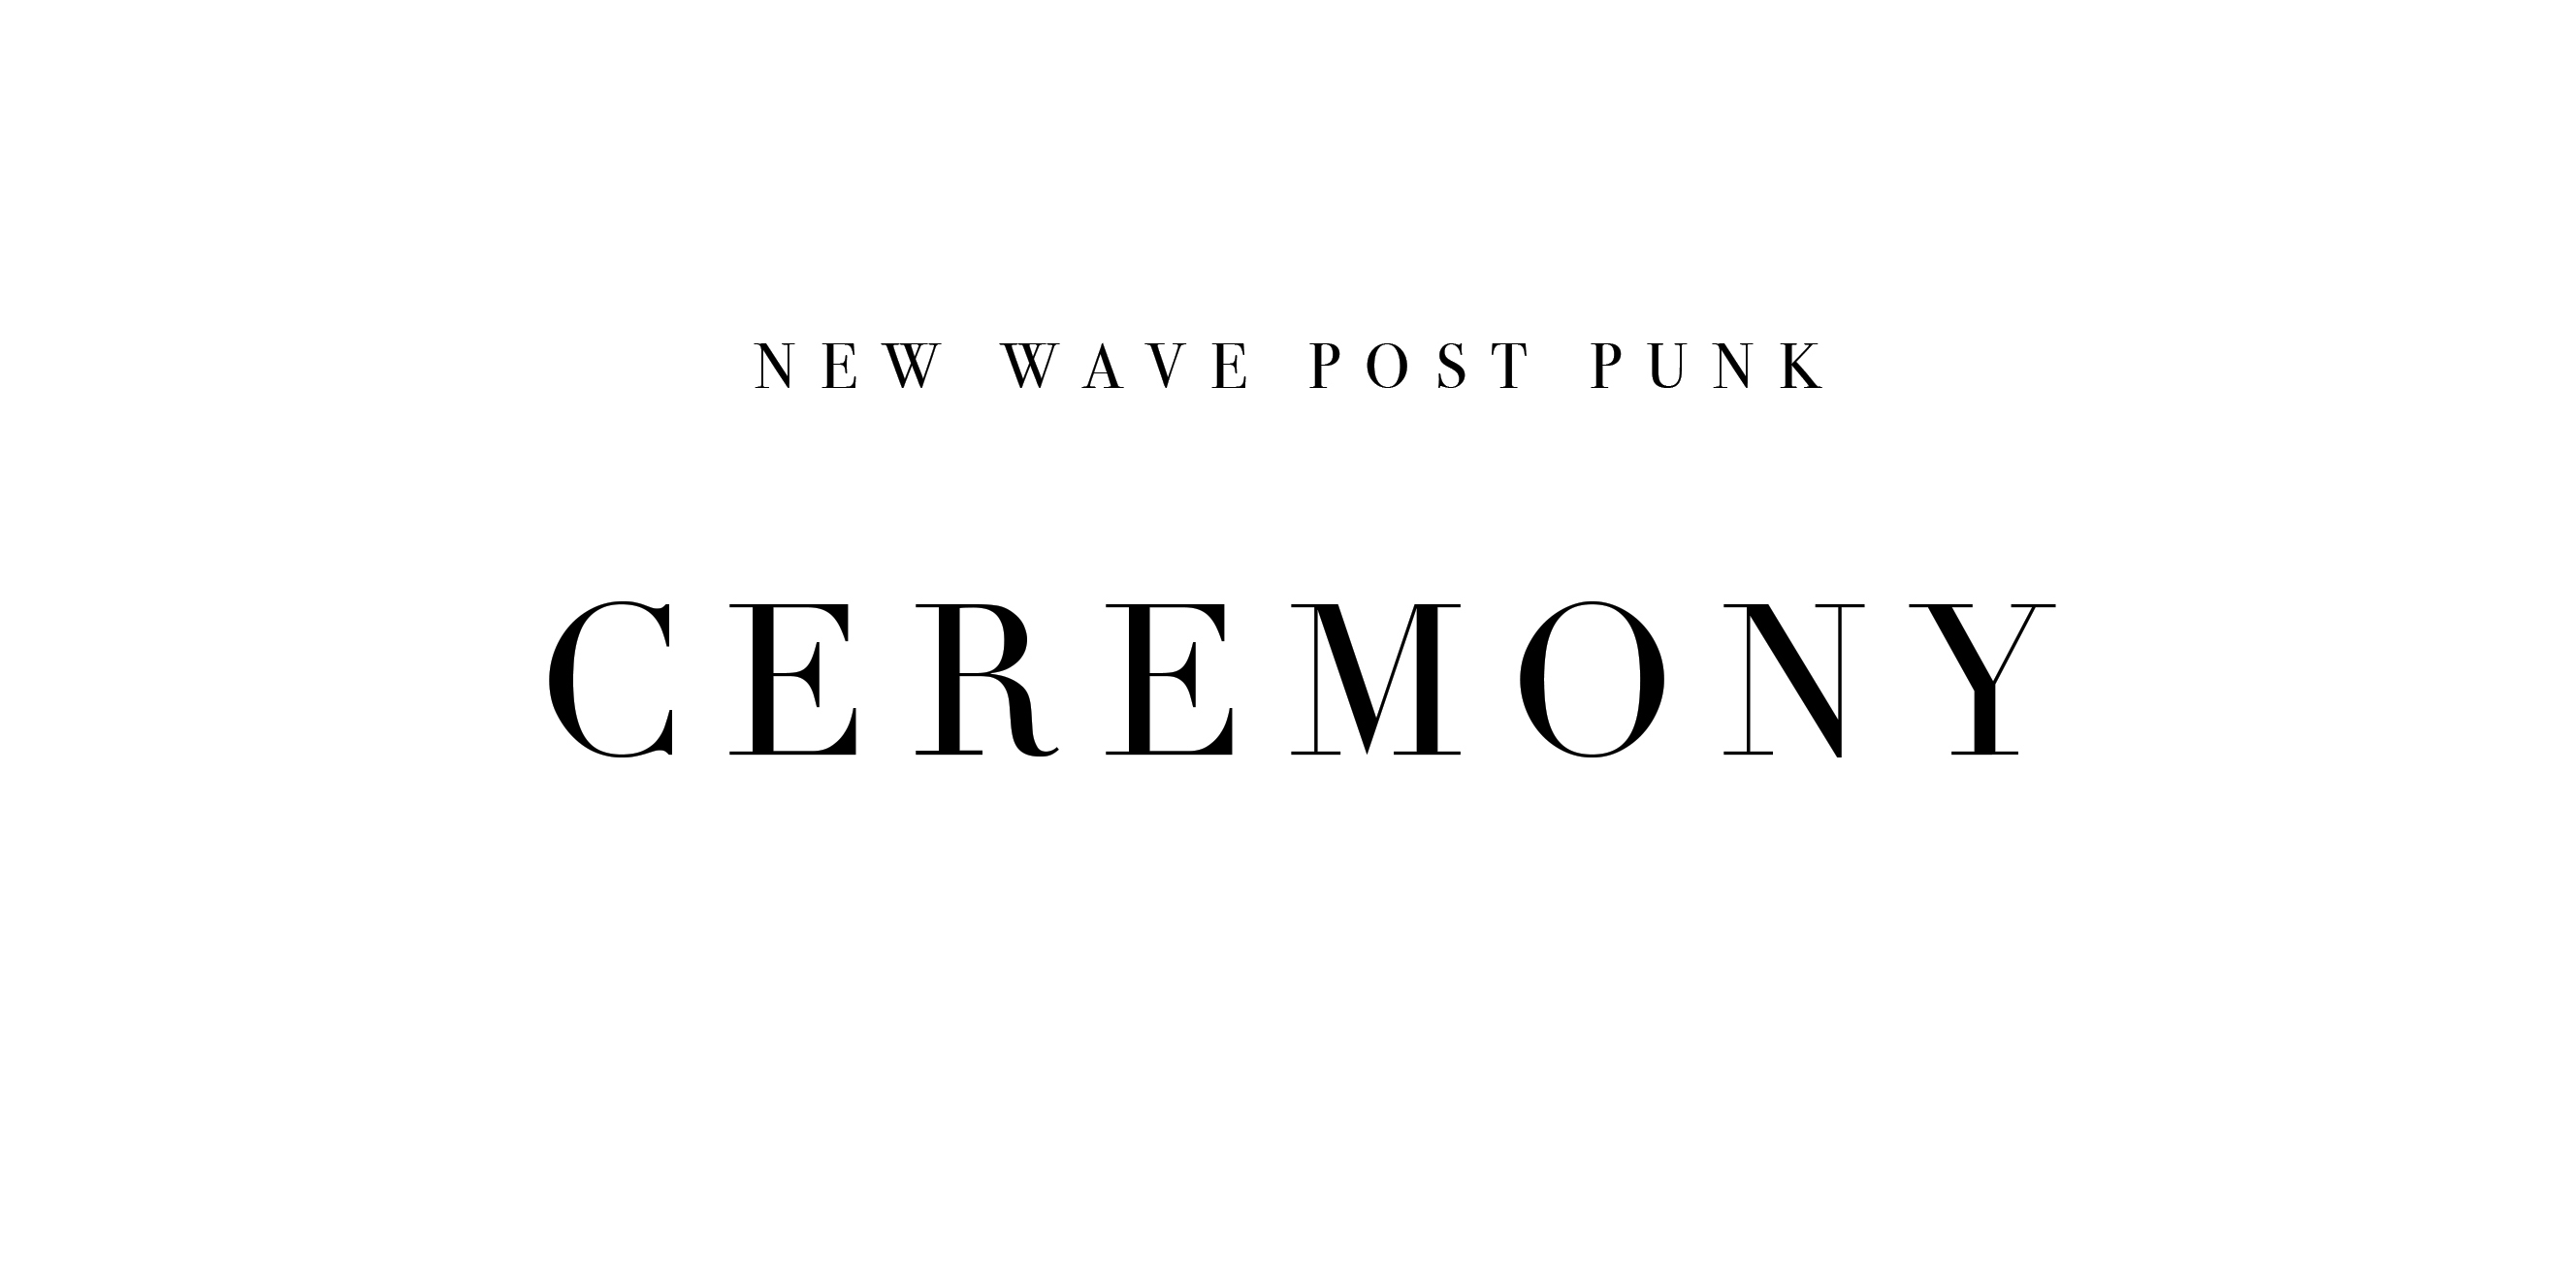 NEW WAVE POST PUNK CEREMONY #14